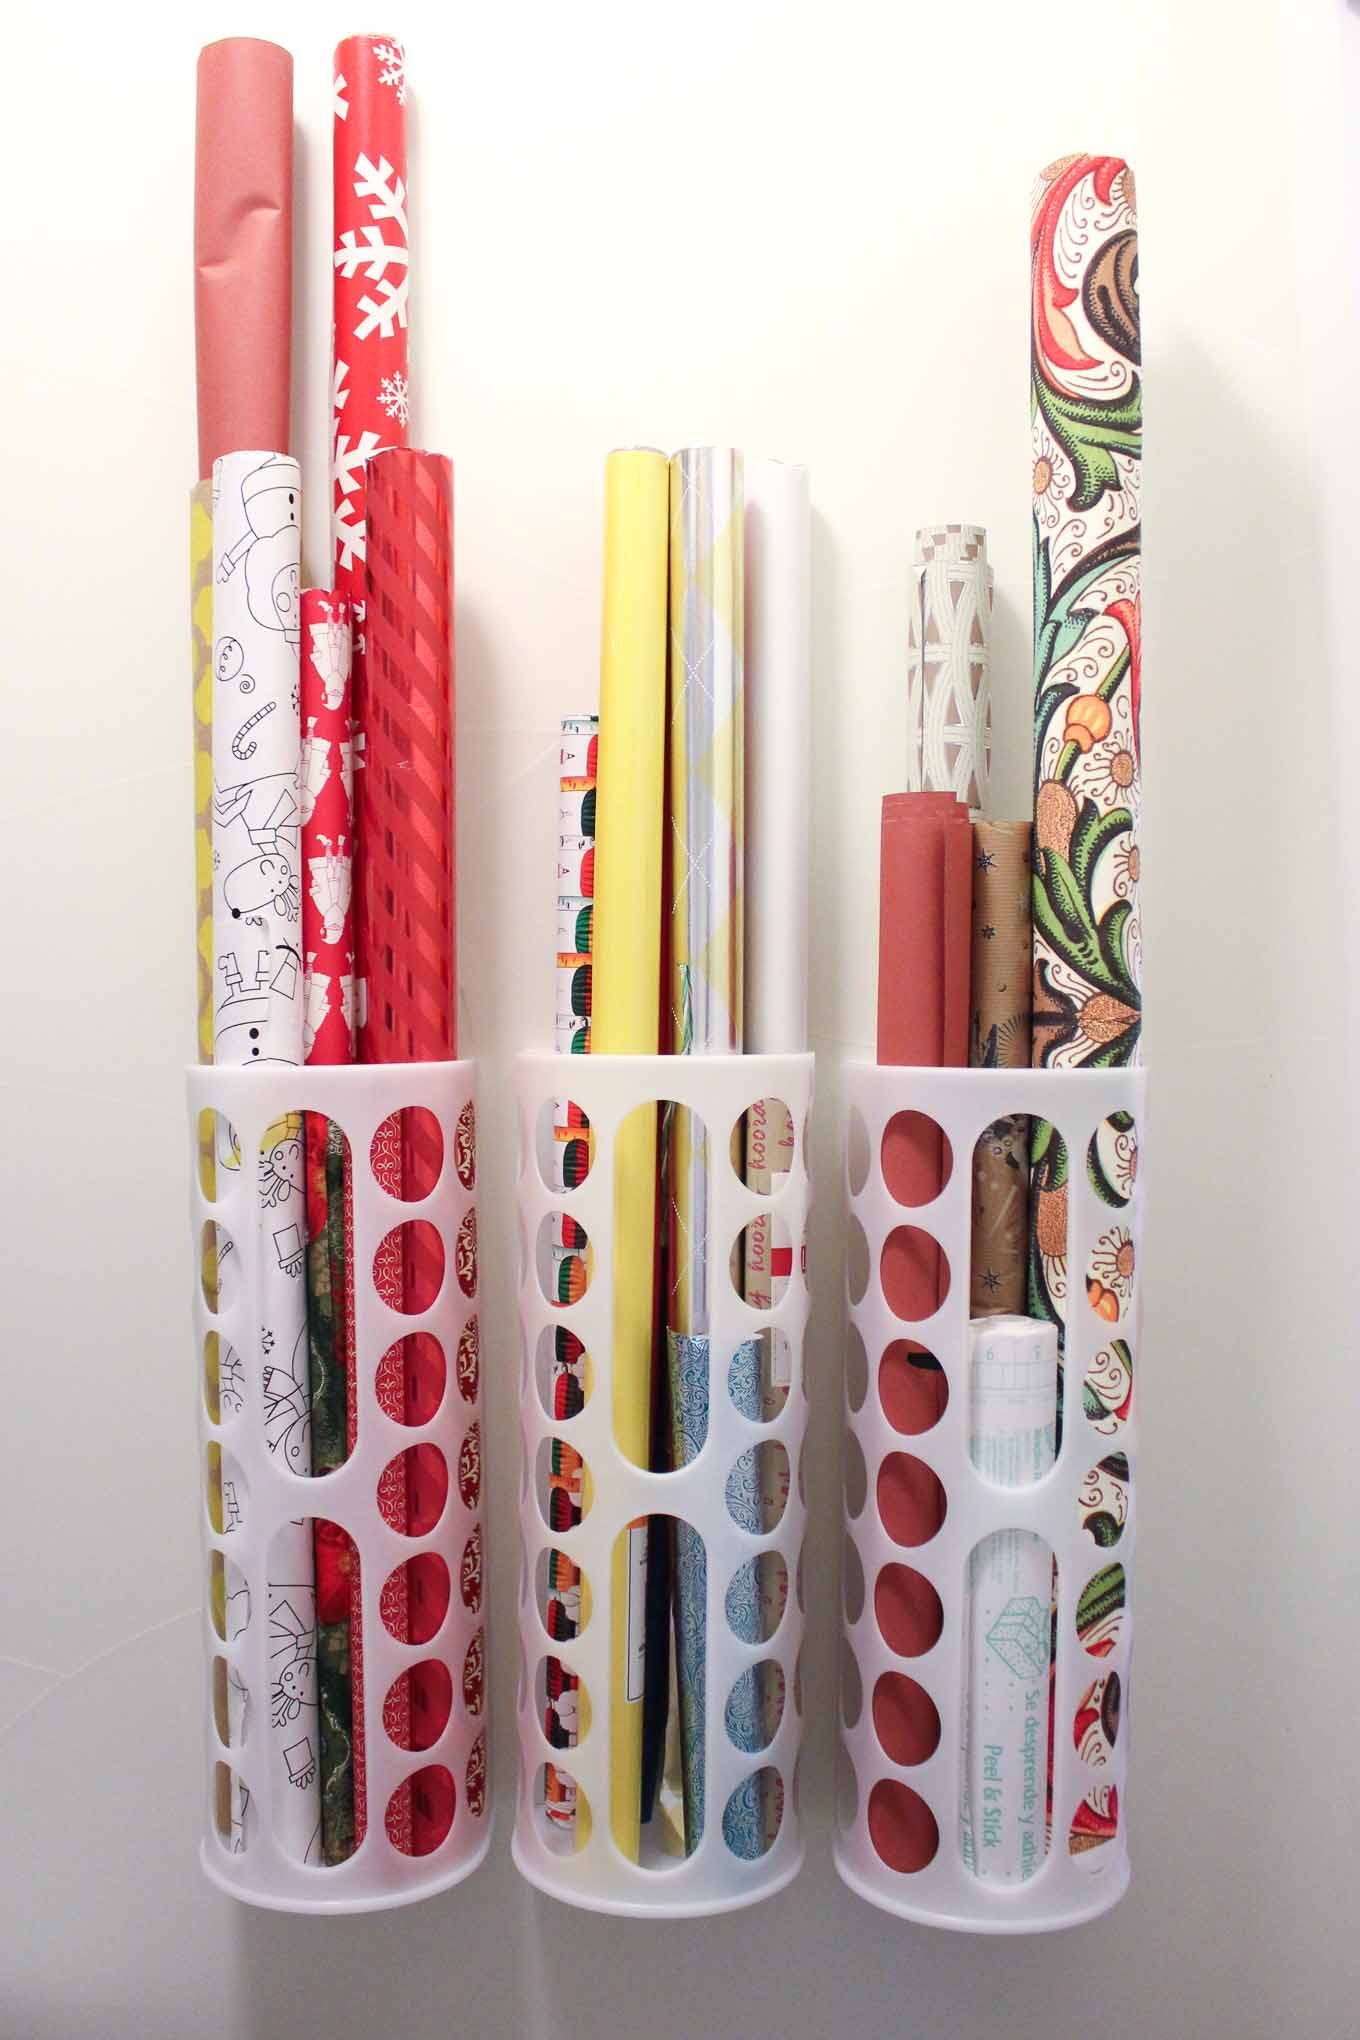 Ikea Box Holder Diy Vertical Wrapping Paper Storage Idea Ikea Hack